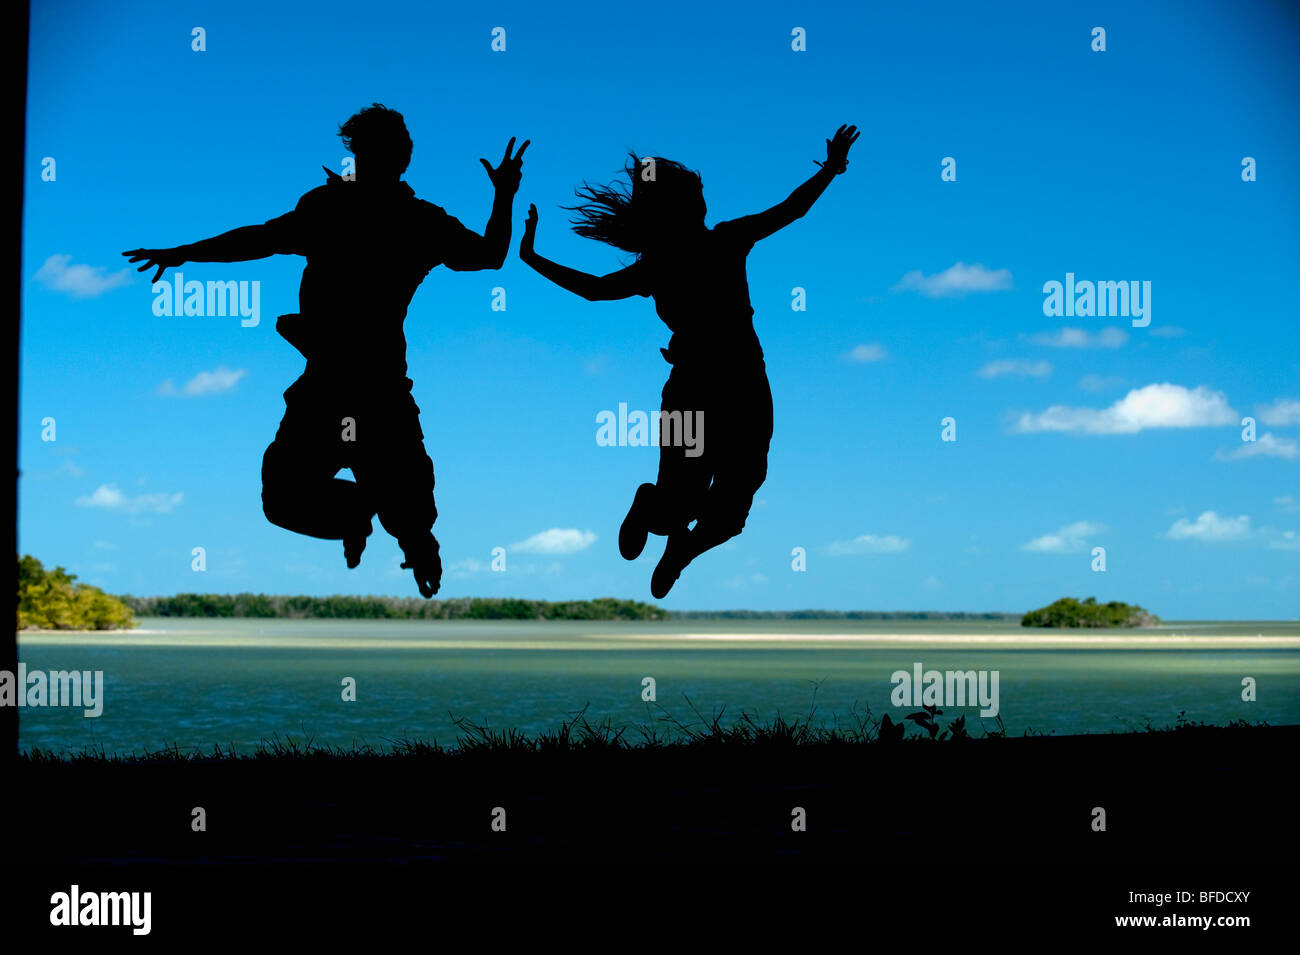 A couple leap into the air in Everglades National Park, Florida. (silhouette) - Stock Image